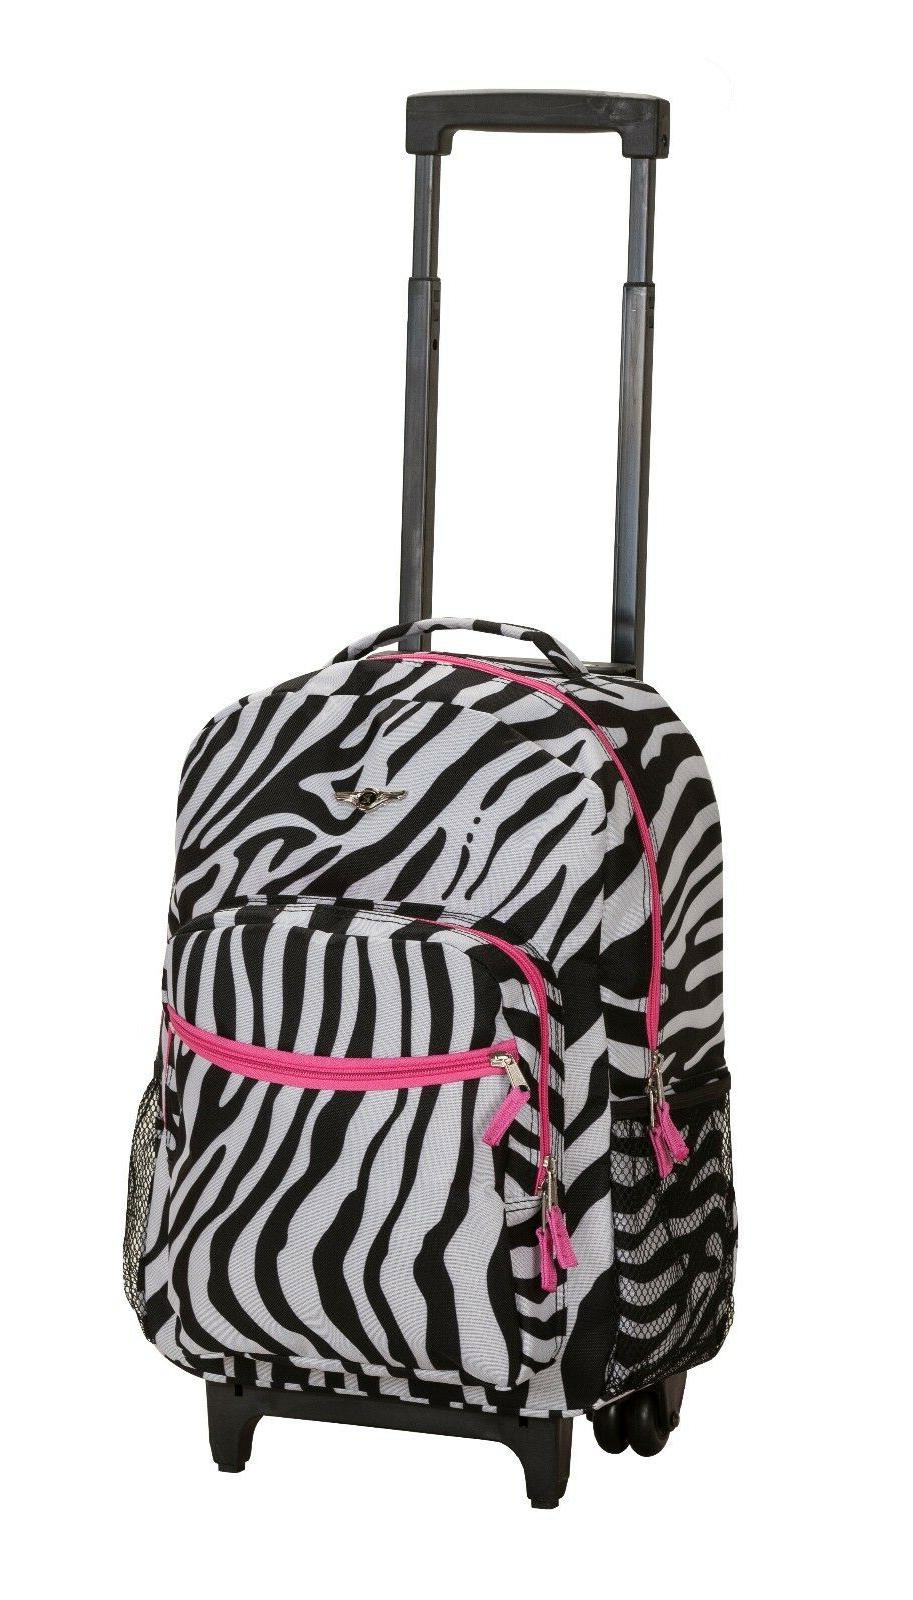 "Deluxe Wheel 17"" Carry on Travel Luggage Bag"